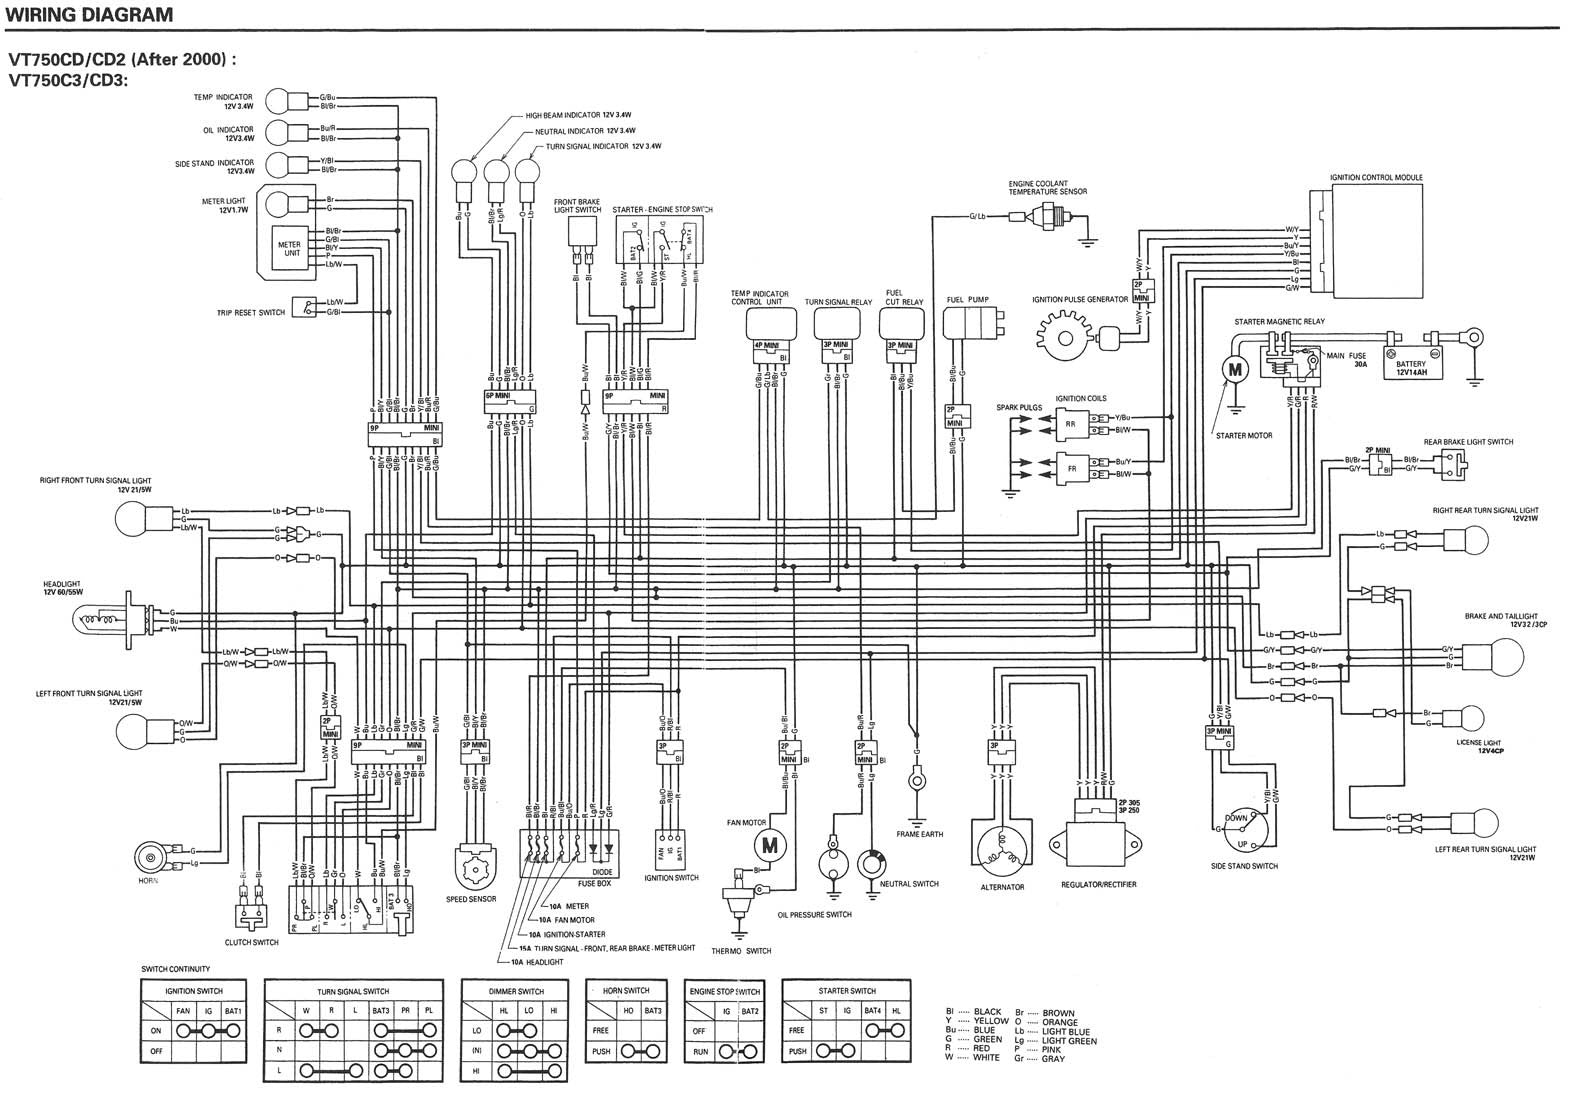 Faq Tj Brutal Customs 2004 Honda Pilot Engine Diagram Vt750 Ace Wiring 2001 2003 V2